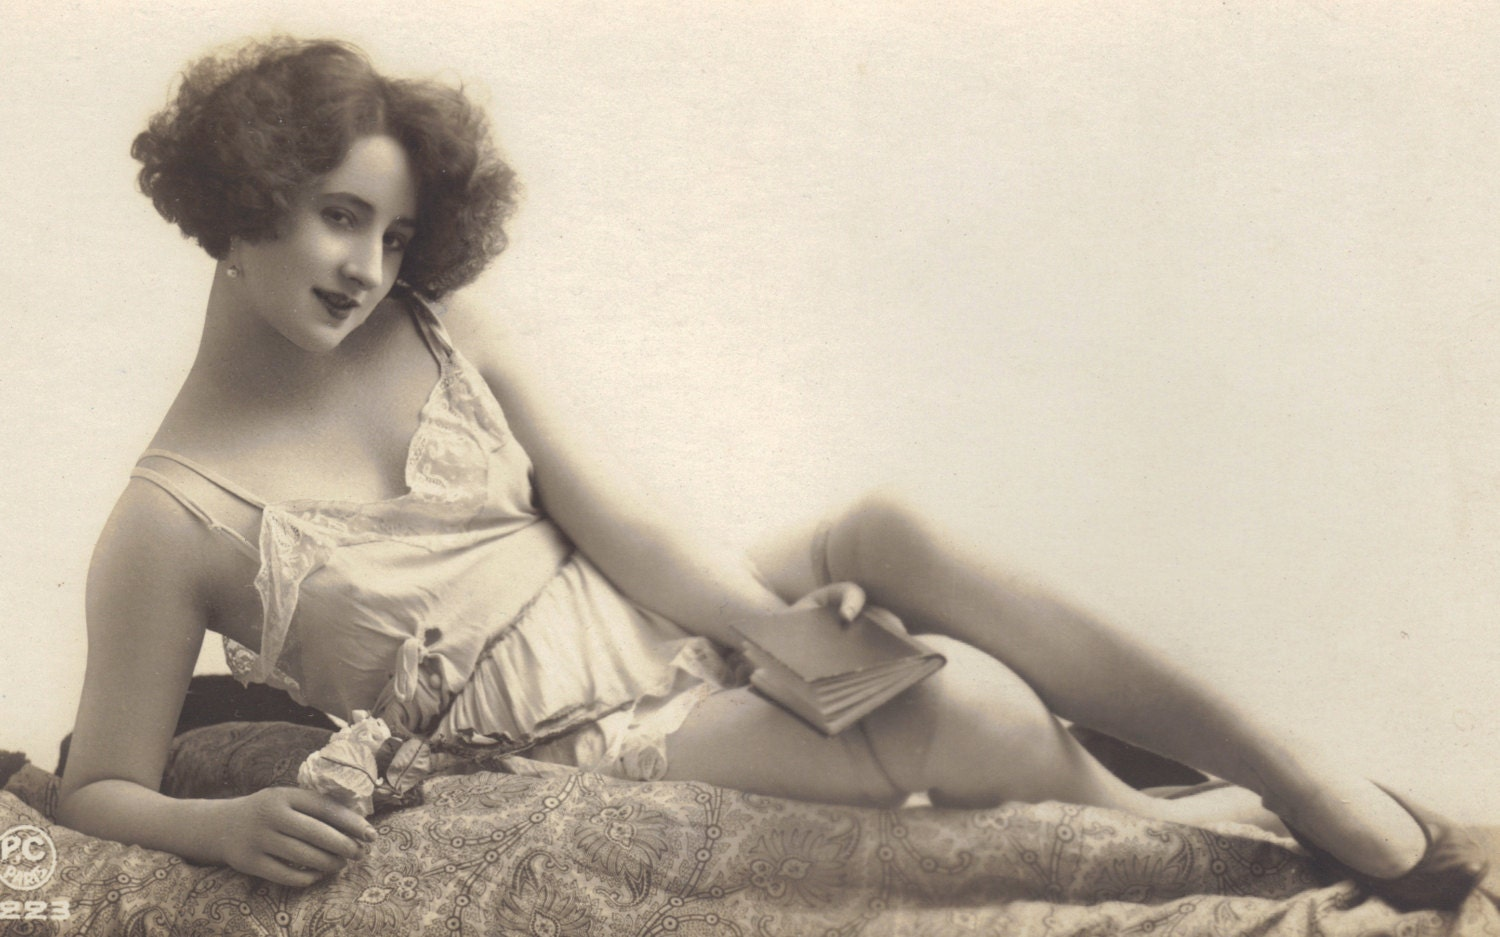 1920s women risque - 3 3